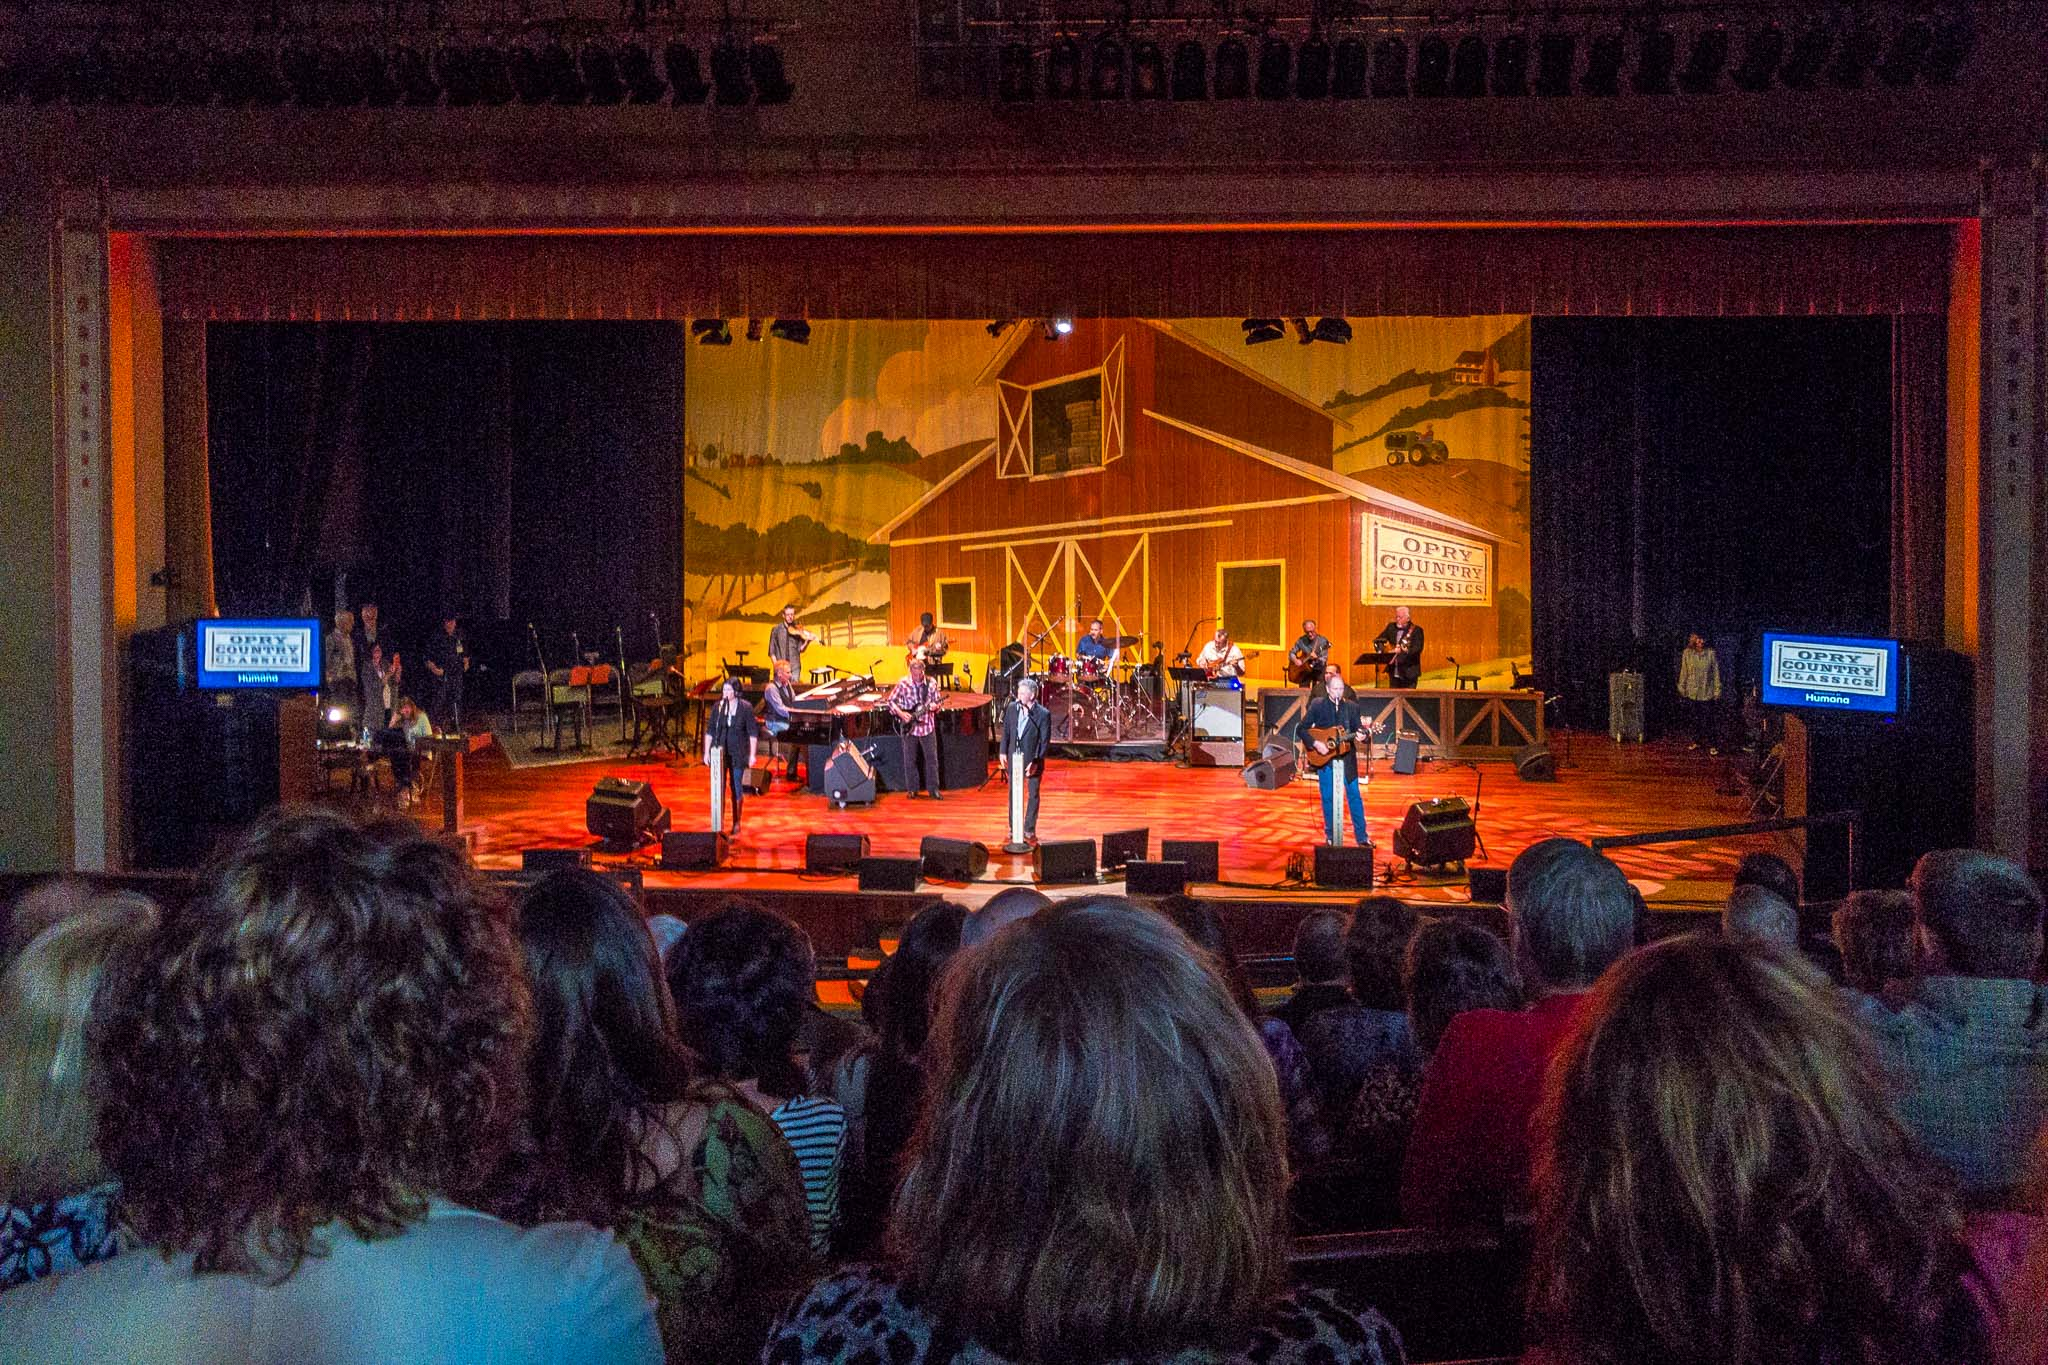 The Grand Ole Opry at the Ryman Auditorium